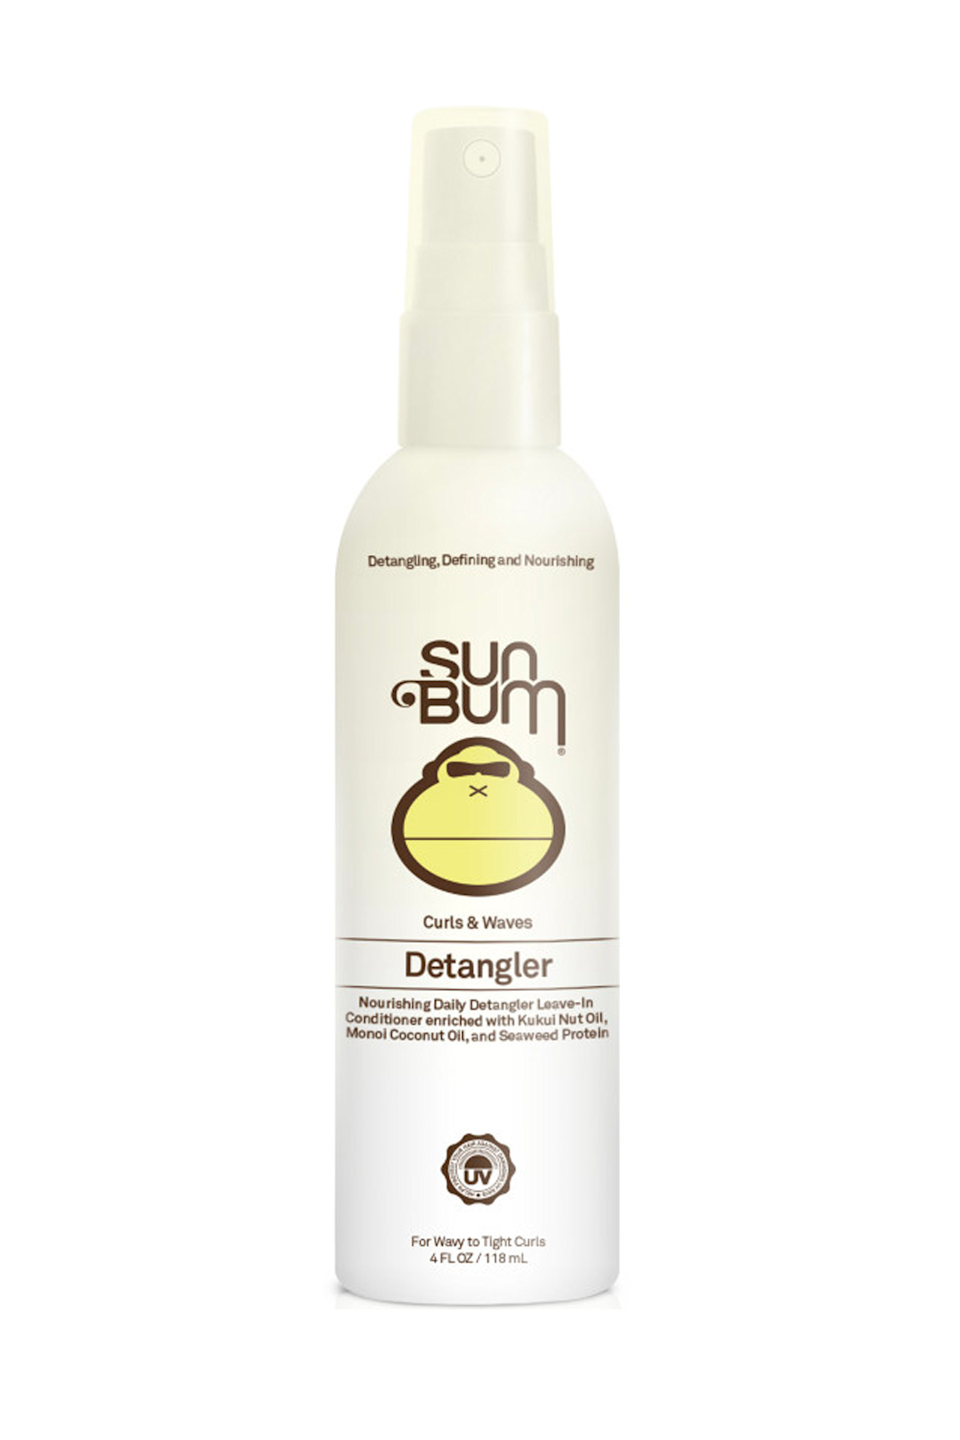 """<p><strong>Sun Bum</strong></p><p>ulta.com</p><p><strong>$14.99</strong></p><p><a href=""""https://go.redirectingat.com?id=74968X1596630&url=https%3A%2F%2Fwww.ulta.com%2Fcurls-waves-detangler%3FproductId%3Dpimprod2005717&sref=https%3A%2F%2Fwww.cosmopolitan.com%2Fstyle-beauty%2Fbeauty%2Fg36027428%2Fbest-detanglers-for-curly-hair%2F"""" rel=""""nofollow noopener"""" target=""""_blank"""" data-ylk=""""slk:Shop Now"""" class=""""link rapid-noclick-resp"""">Shop Now</a></p><p>Perfect for finer curls or <a href=""""https://www.cosmopolitan.com/style-beauty/beauty/a26325865/wavy-hairstyles-how-tos/"""" rel=""""nofollow noopener"""" target=""""_blank"""" data-ylk=""""slk:waves"""" class=""""link rapid-noclick-resp"""">waves</a>, this detangler<strong> smoothes, hydrates, and conditions your hair </strong><em>without</em> weighing it down. And since it's got a hefty dose of UV-ray protection, it's also great for maintaining your dye job or highlights during the warmer months.</p>"""